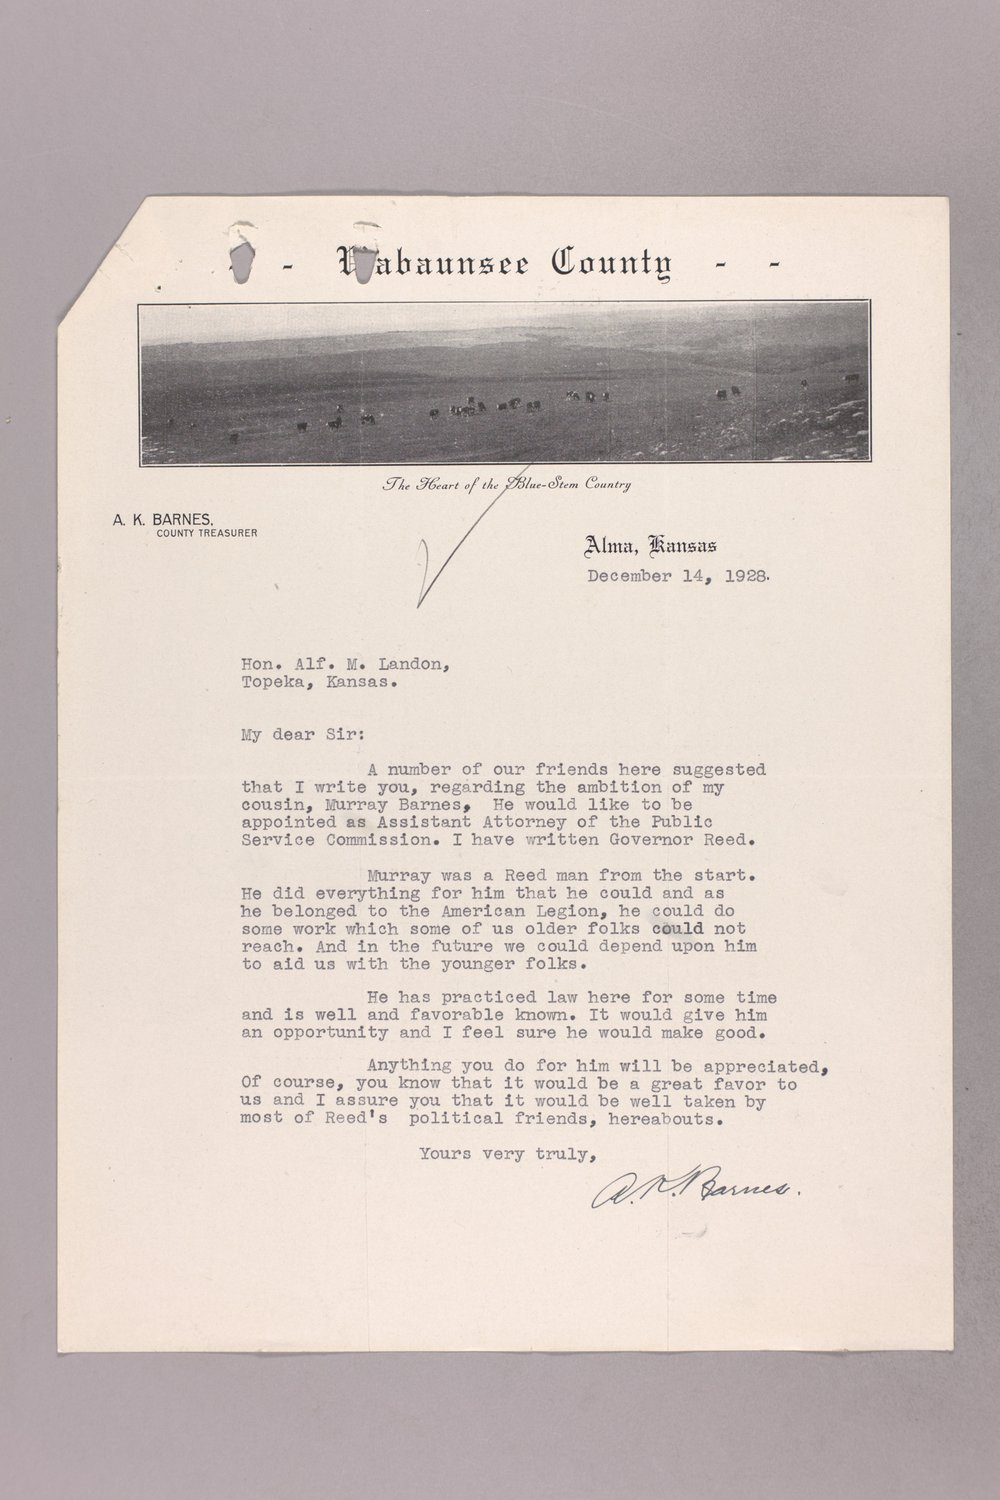 Governor Clyde M. Reed correspondence, Public Service Commission applications - 6